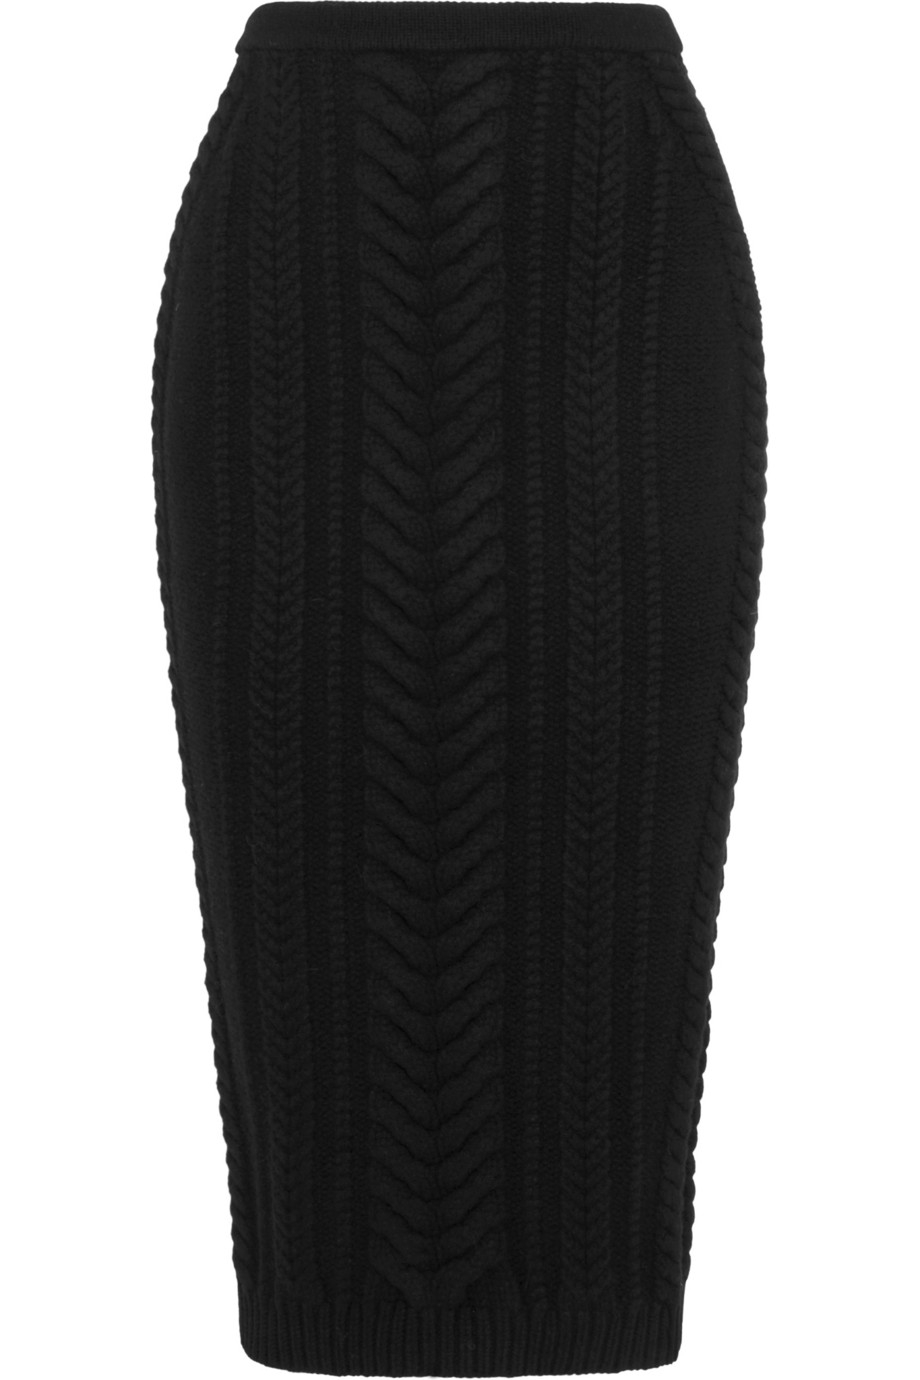 Balmain Cable-Knit Wool Skirt in Black | Lyst